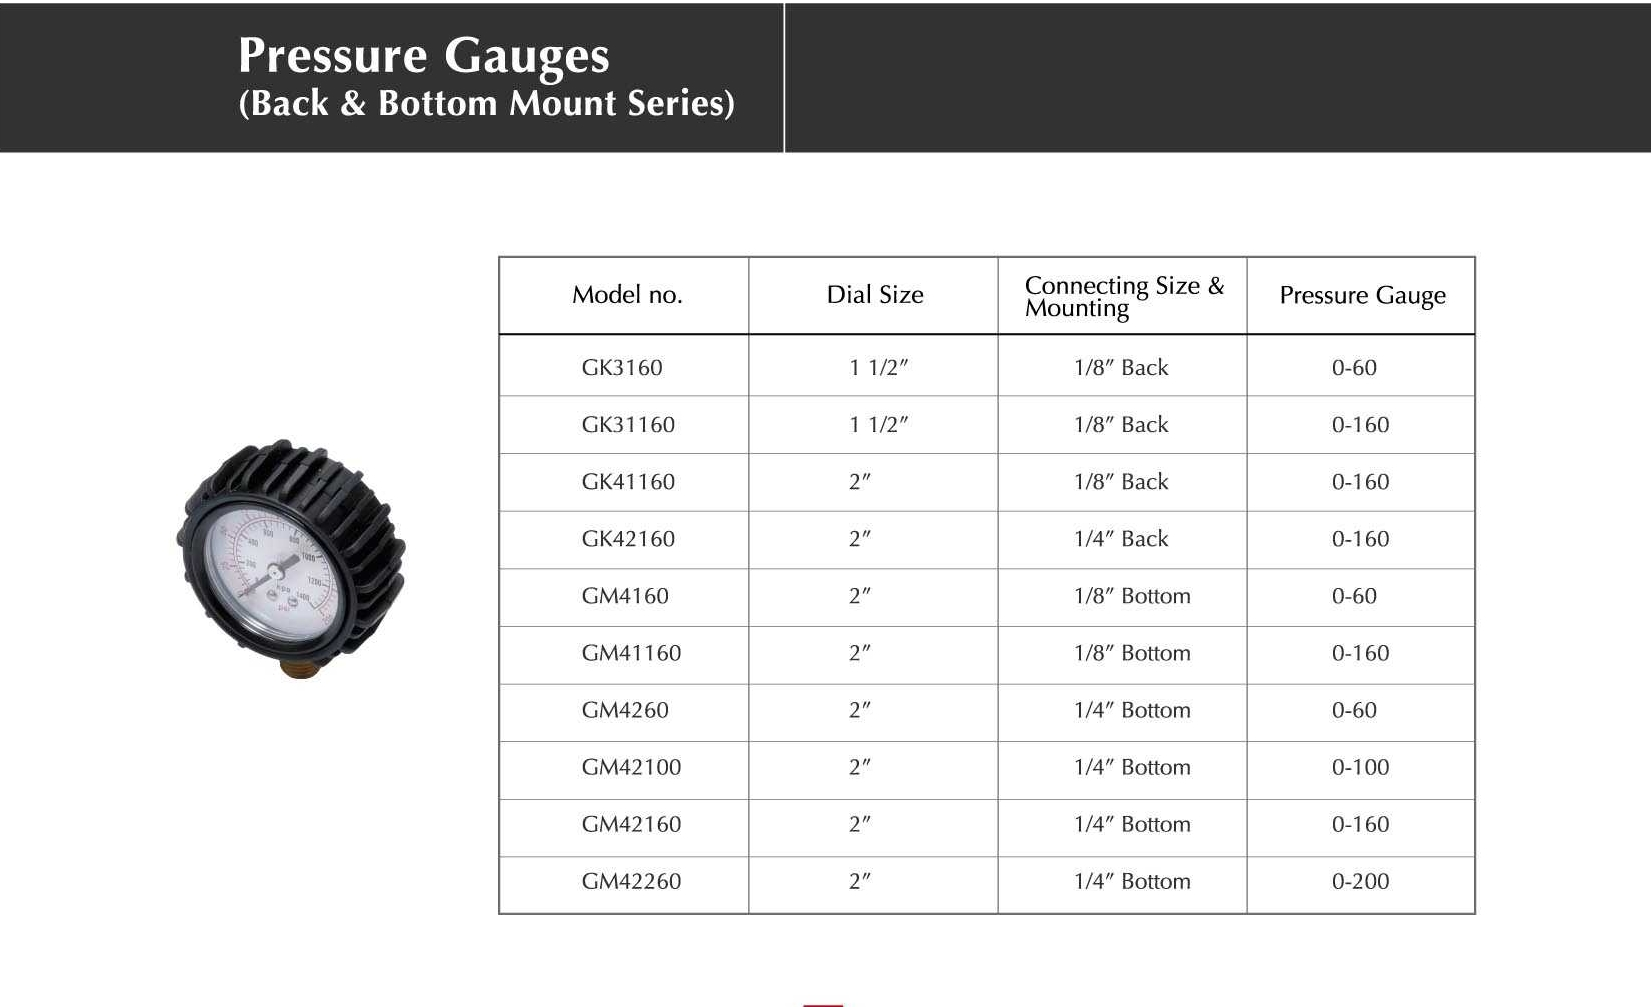 Pressure Gauges (Back & Bottom Mount Series)